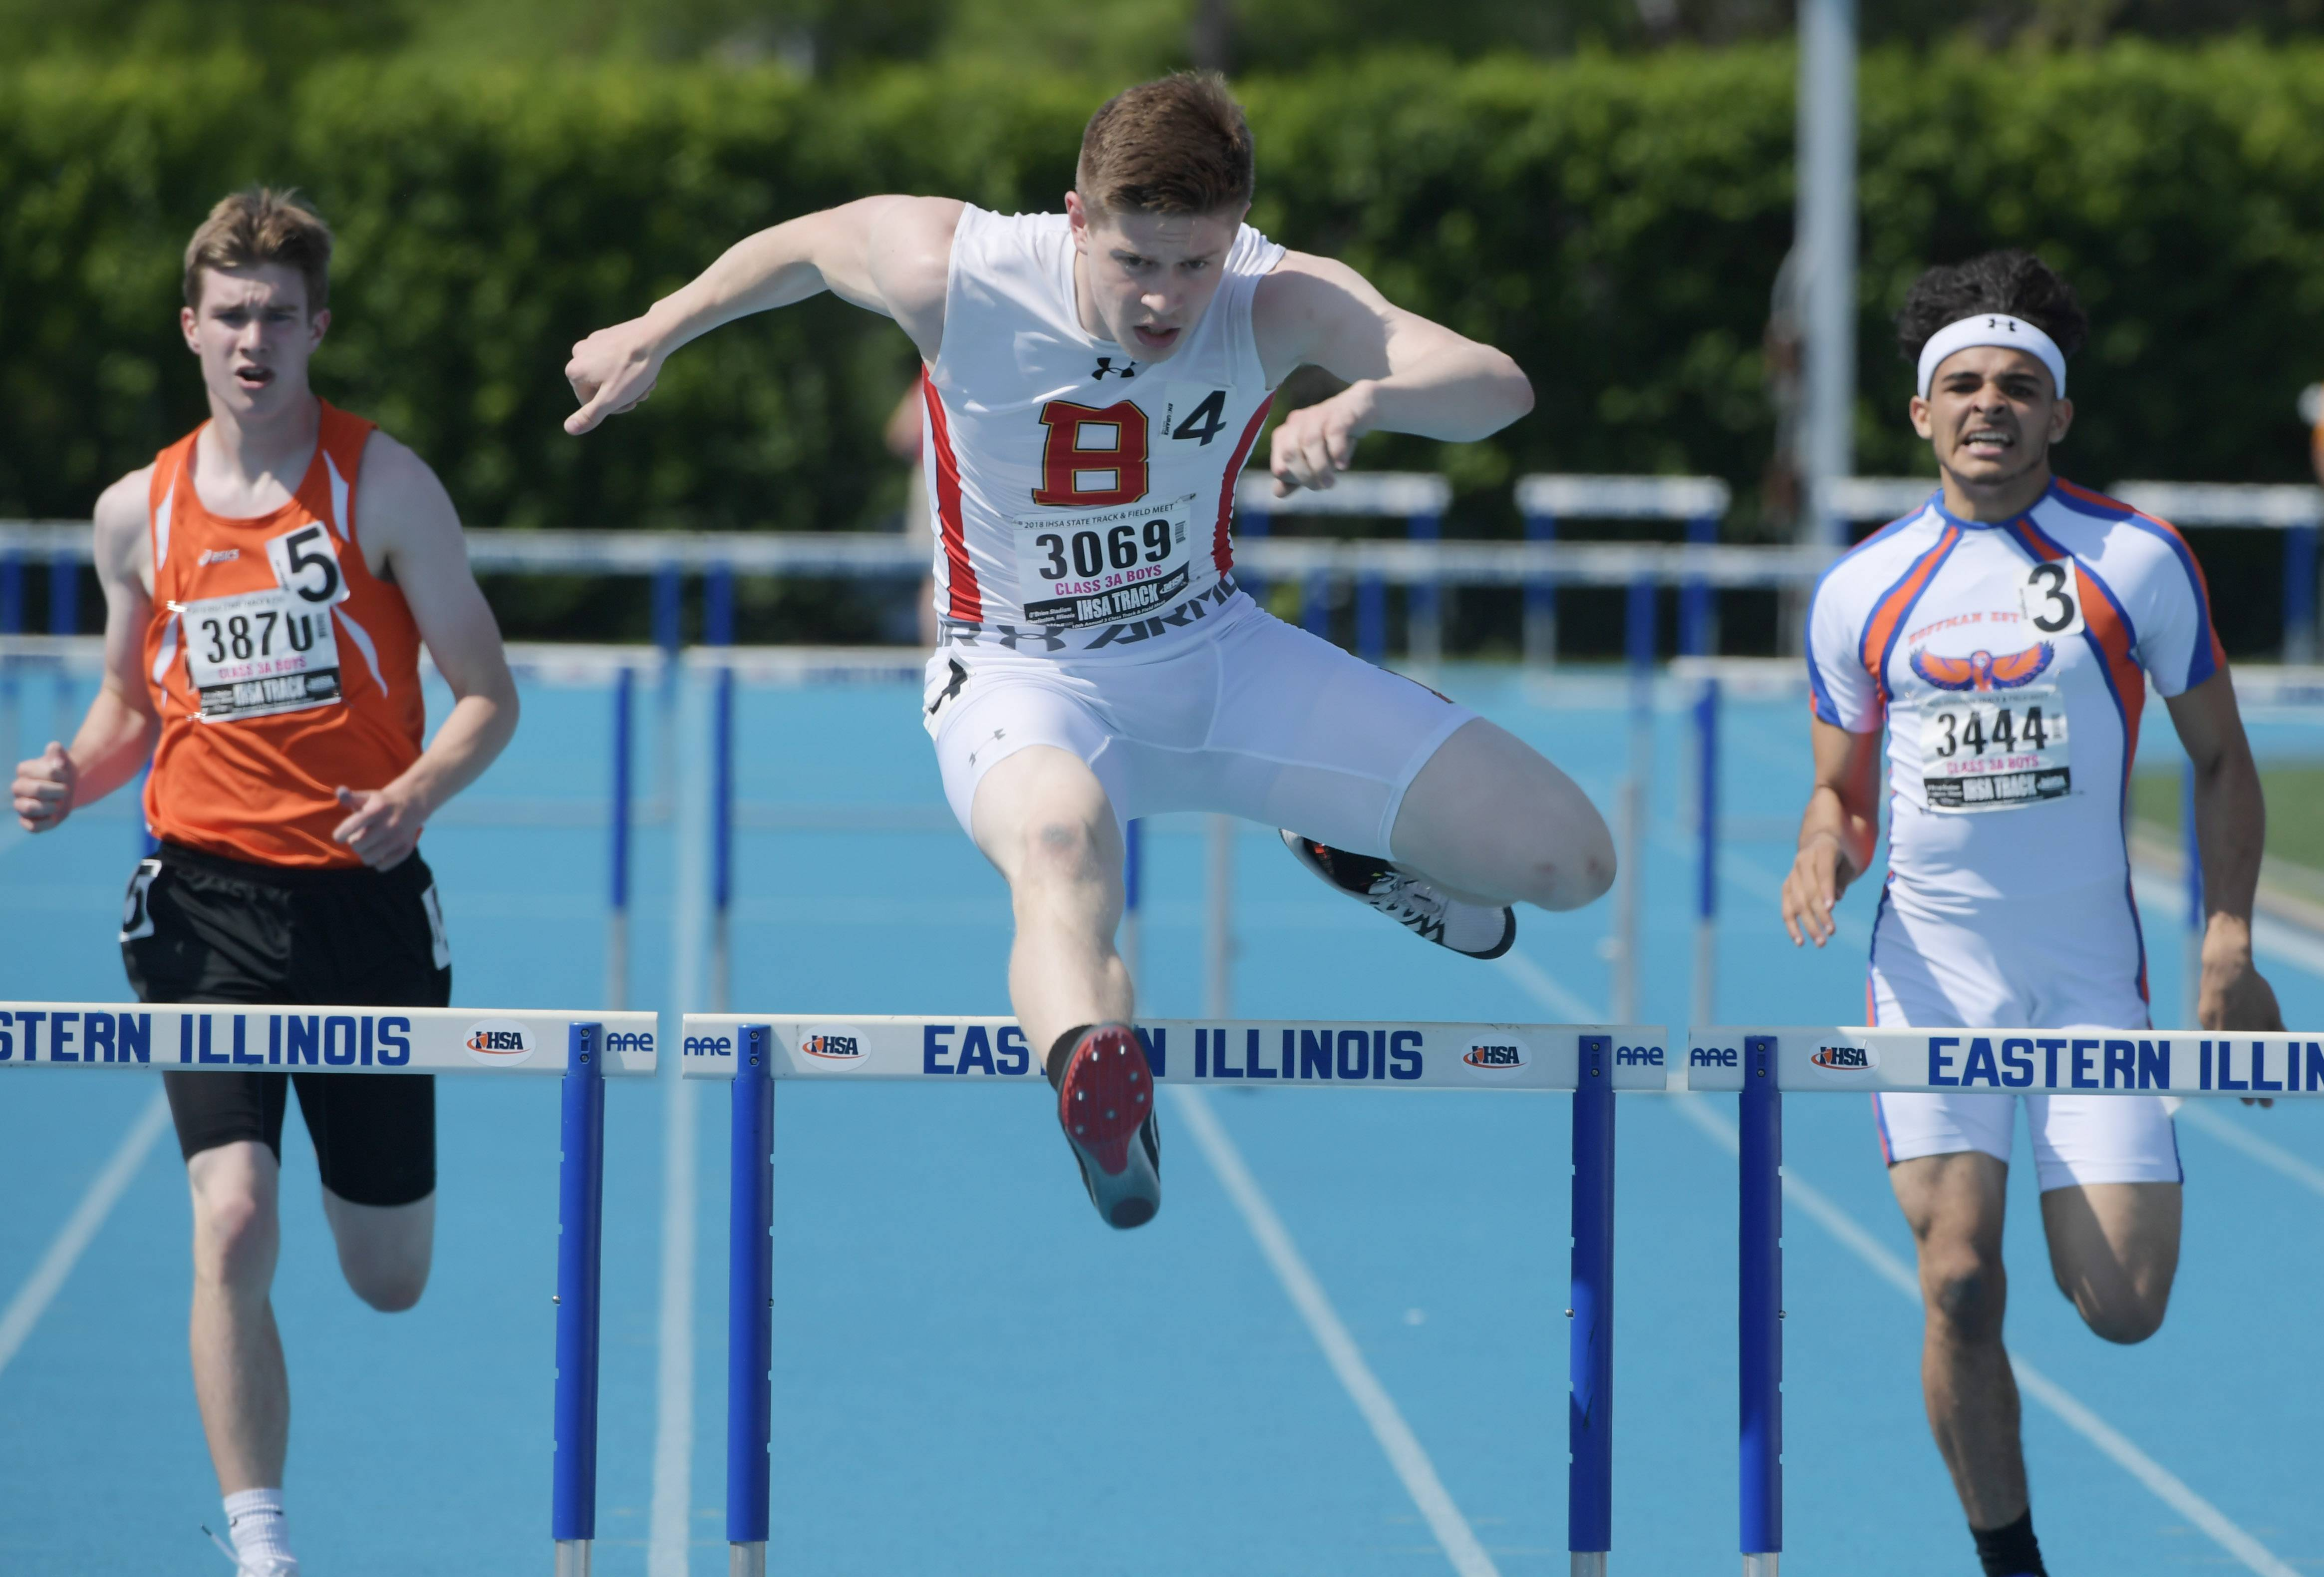 Batavia's Sam Conger competes in the 300-meter intermediate hurdles during the Class 3A boys state track and field prelims in Charleston Friday.